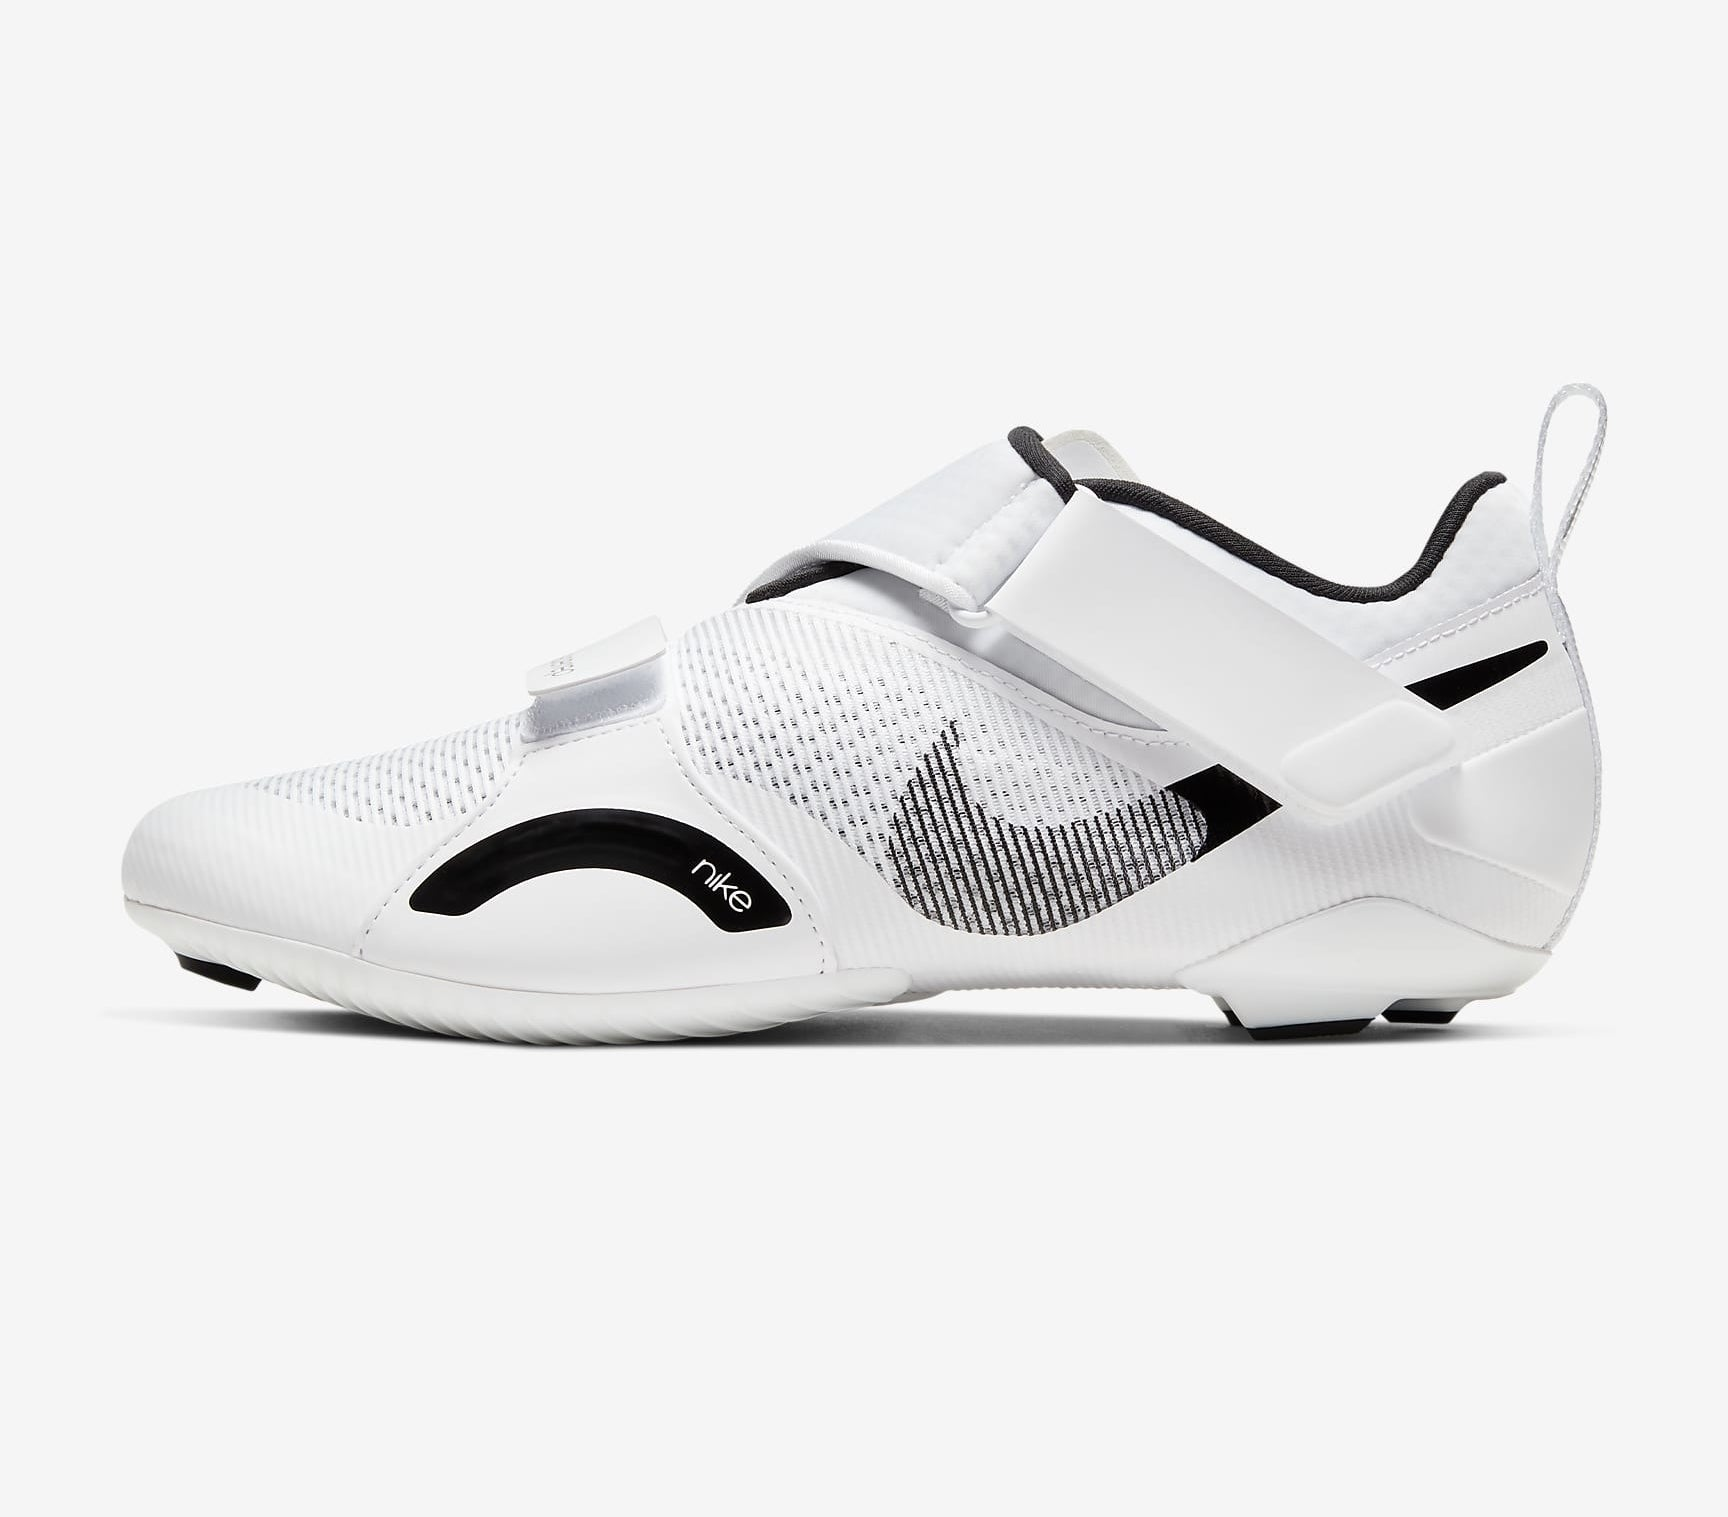 White SuperRep cycling sneakers with black detailing